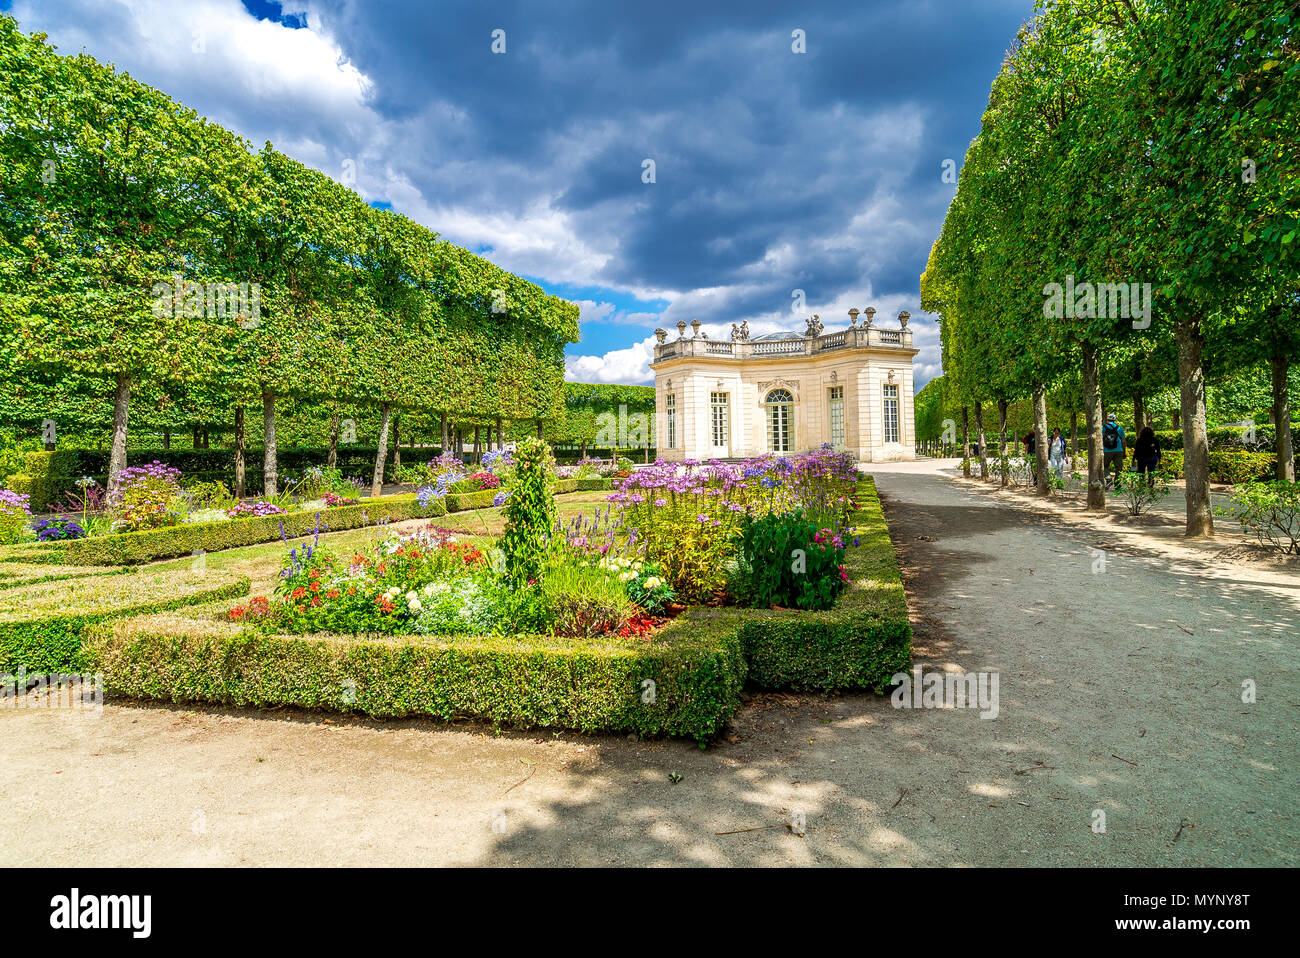 The impressive gardens within the grounds of the Palace of Versailles in France. - Stock Image